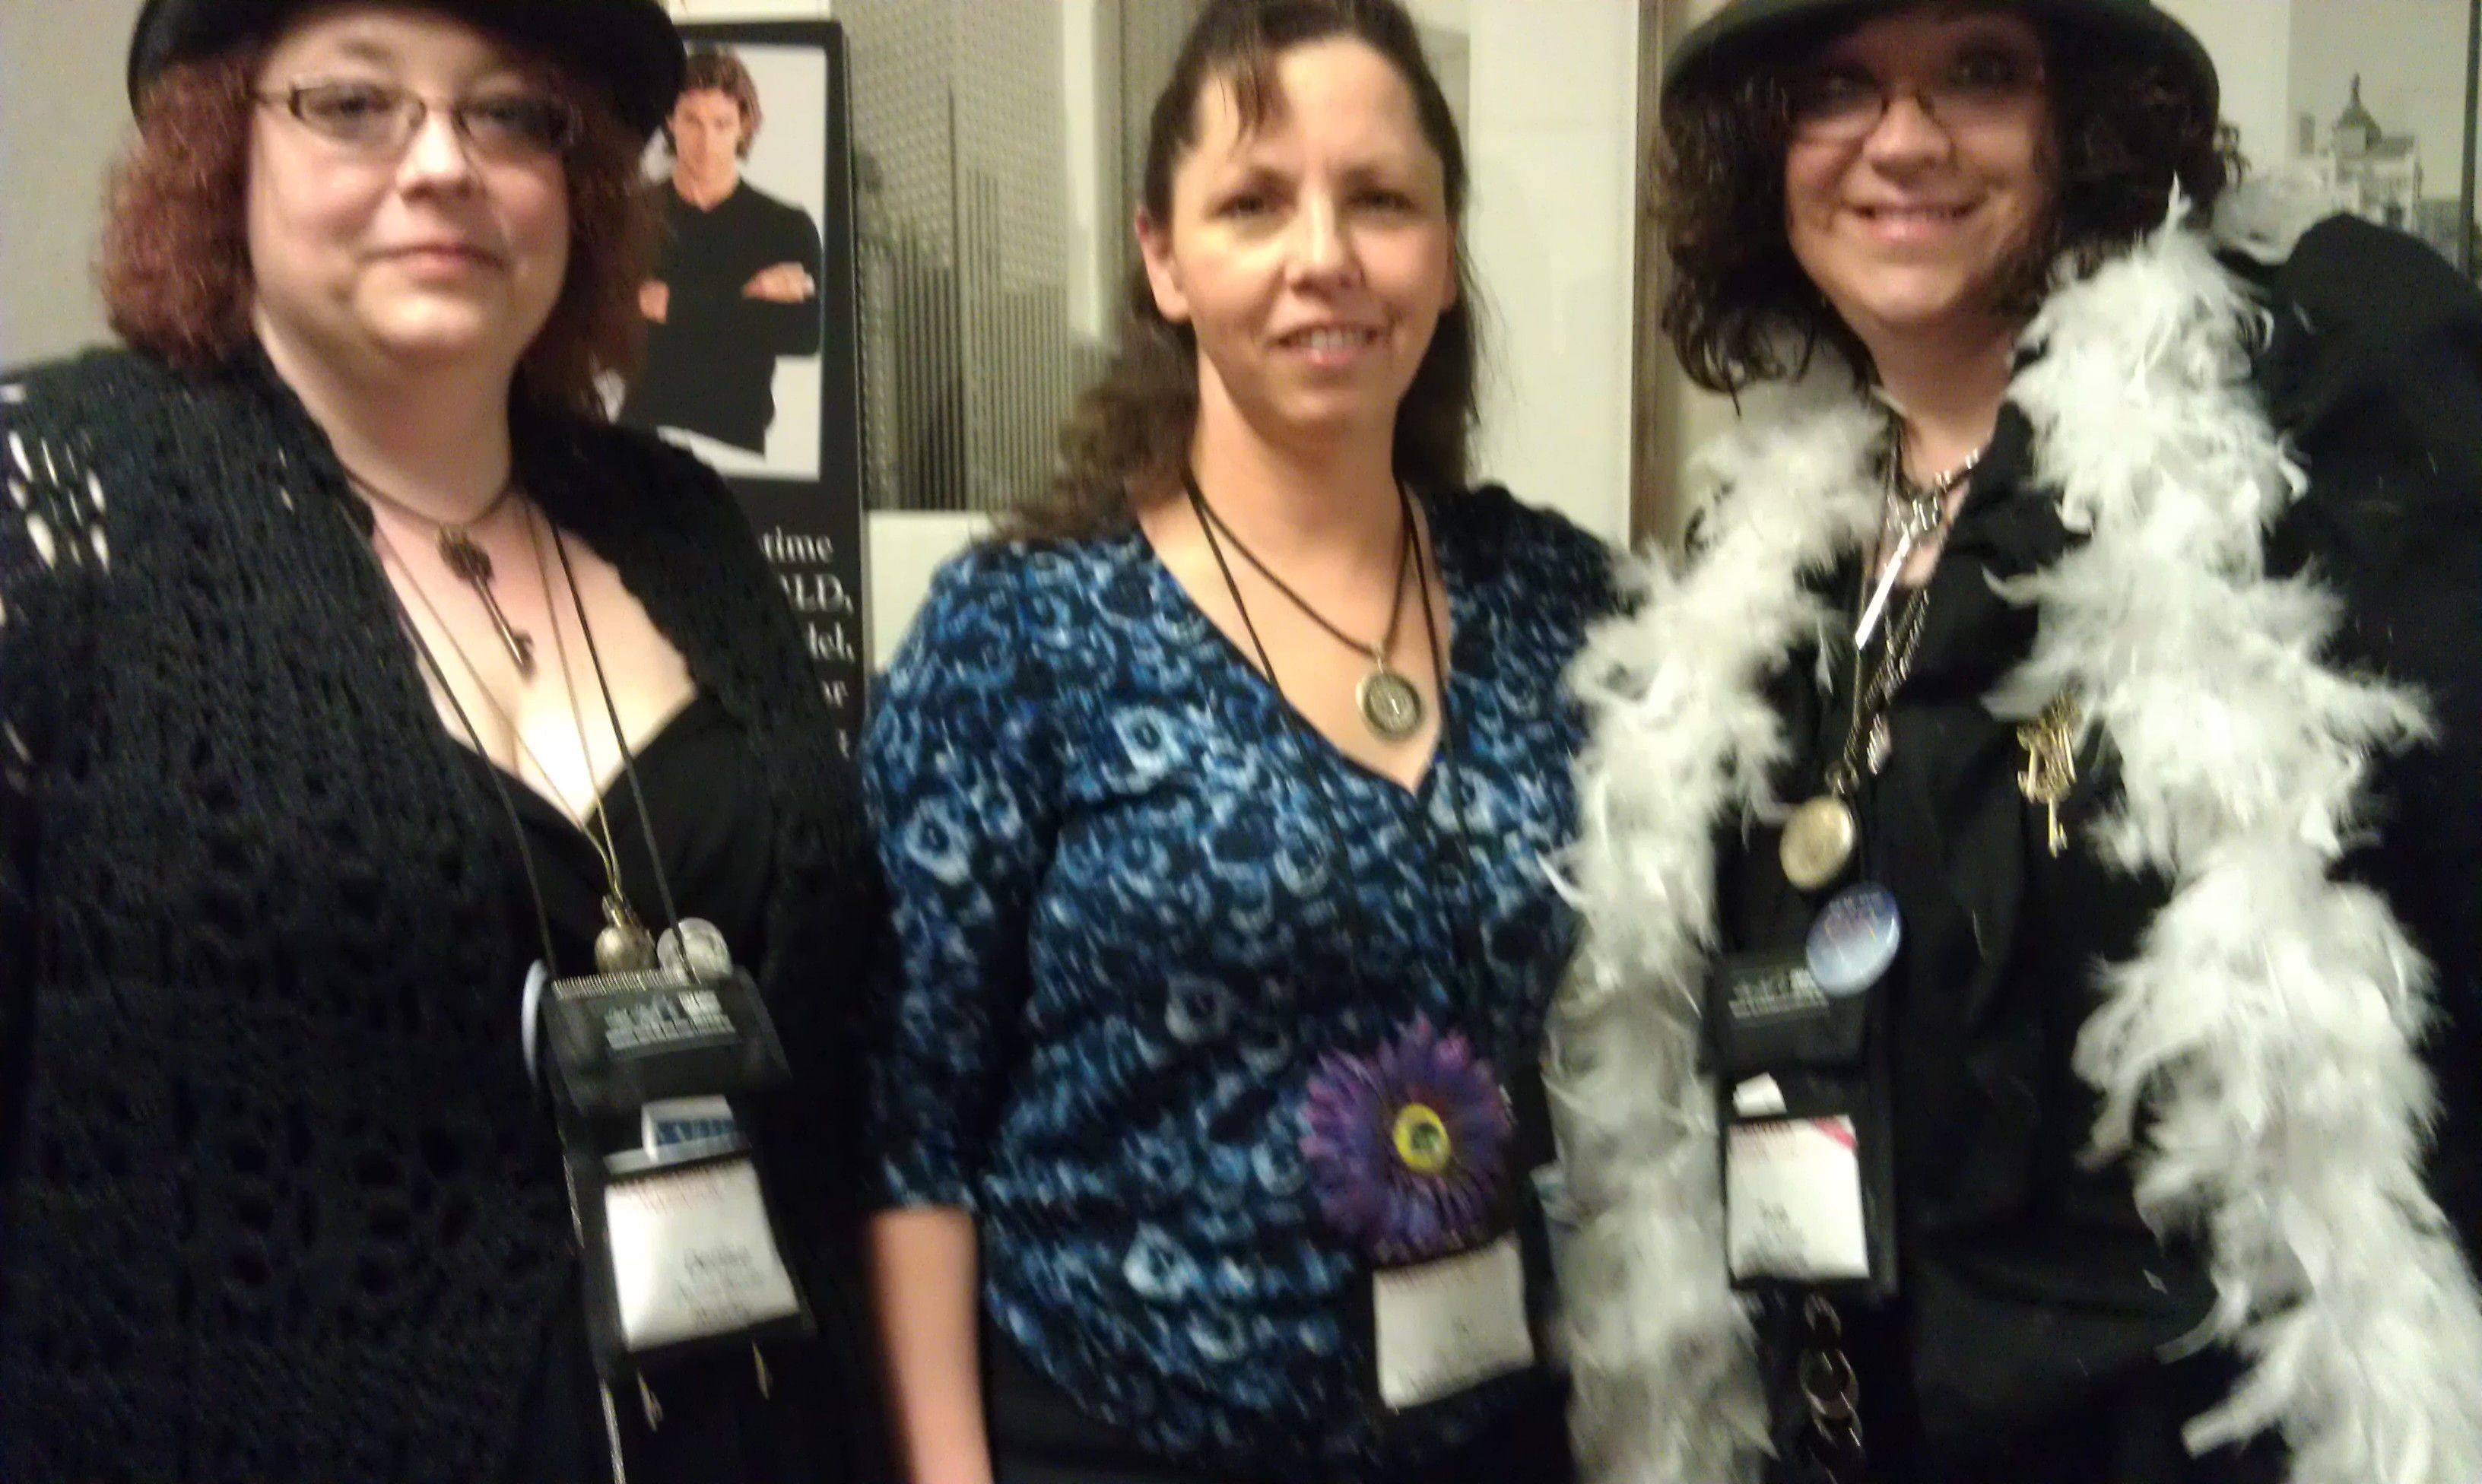 Posing with readers at RT 2012